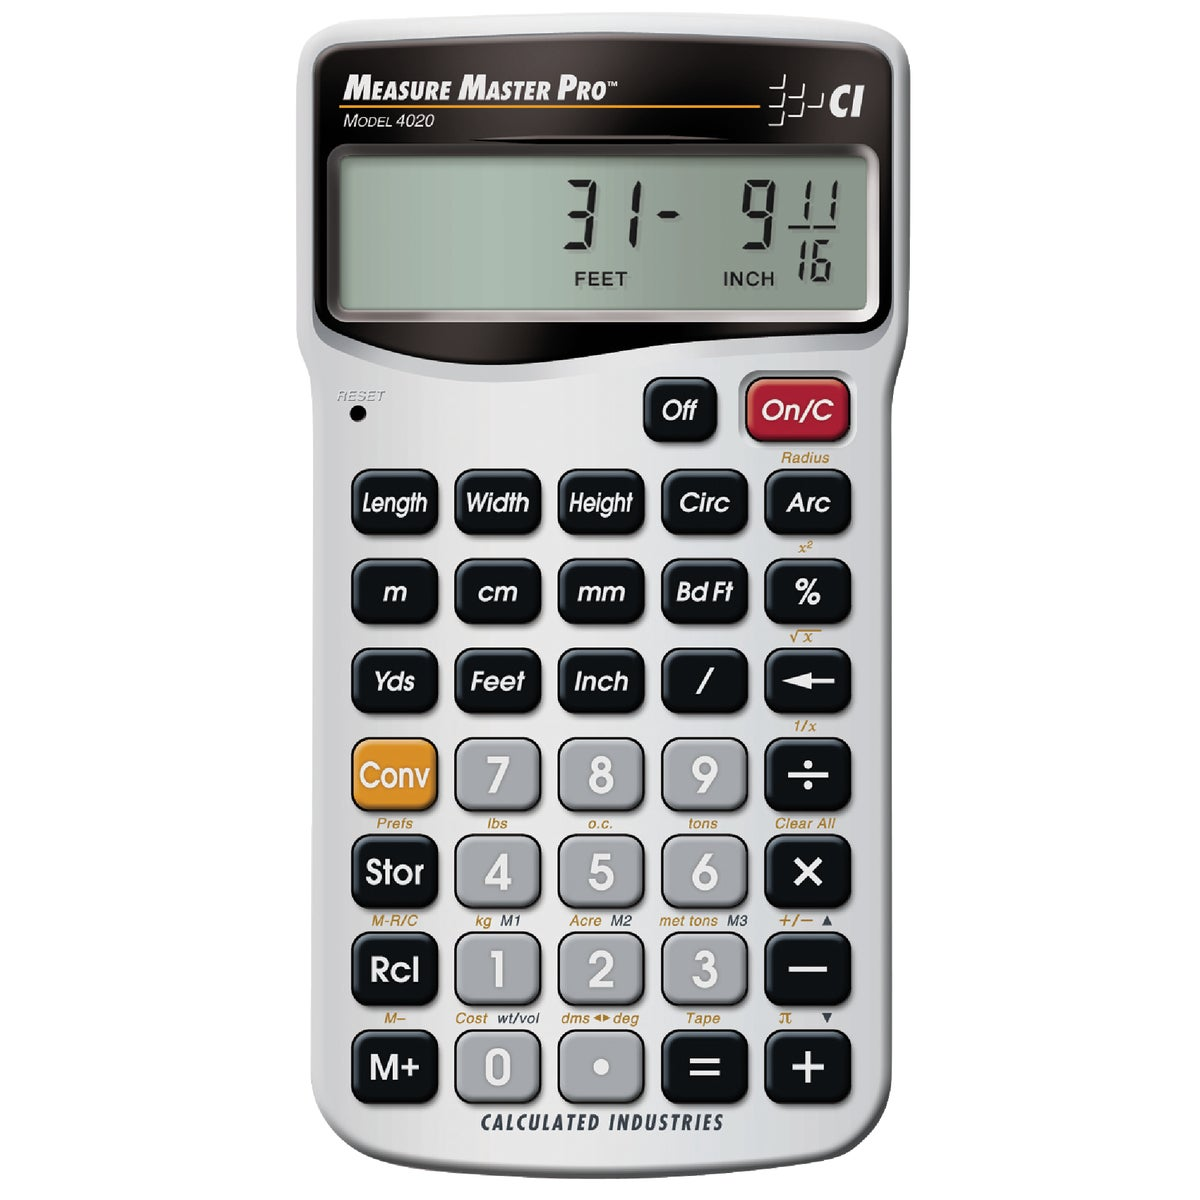 MEAS MSTR PRO CALCULATOR - 4020 by Calculated Ind